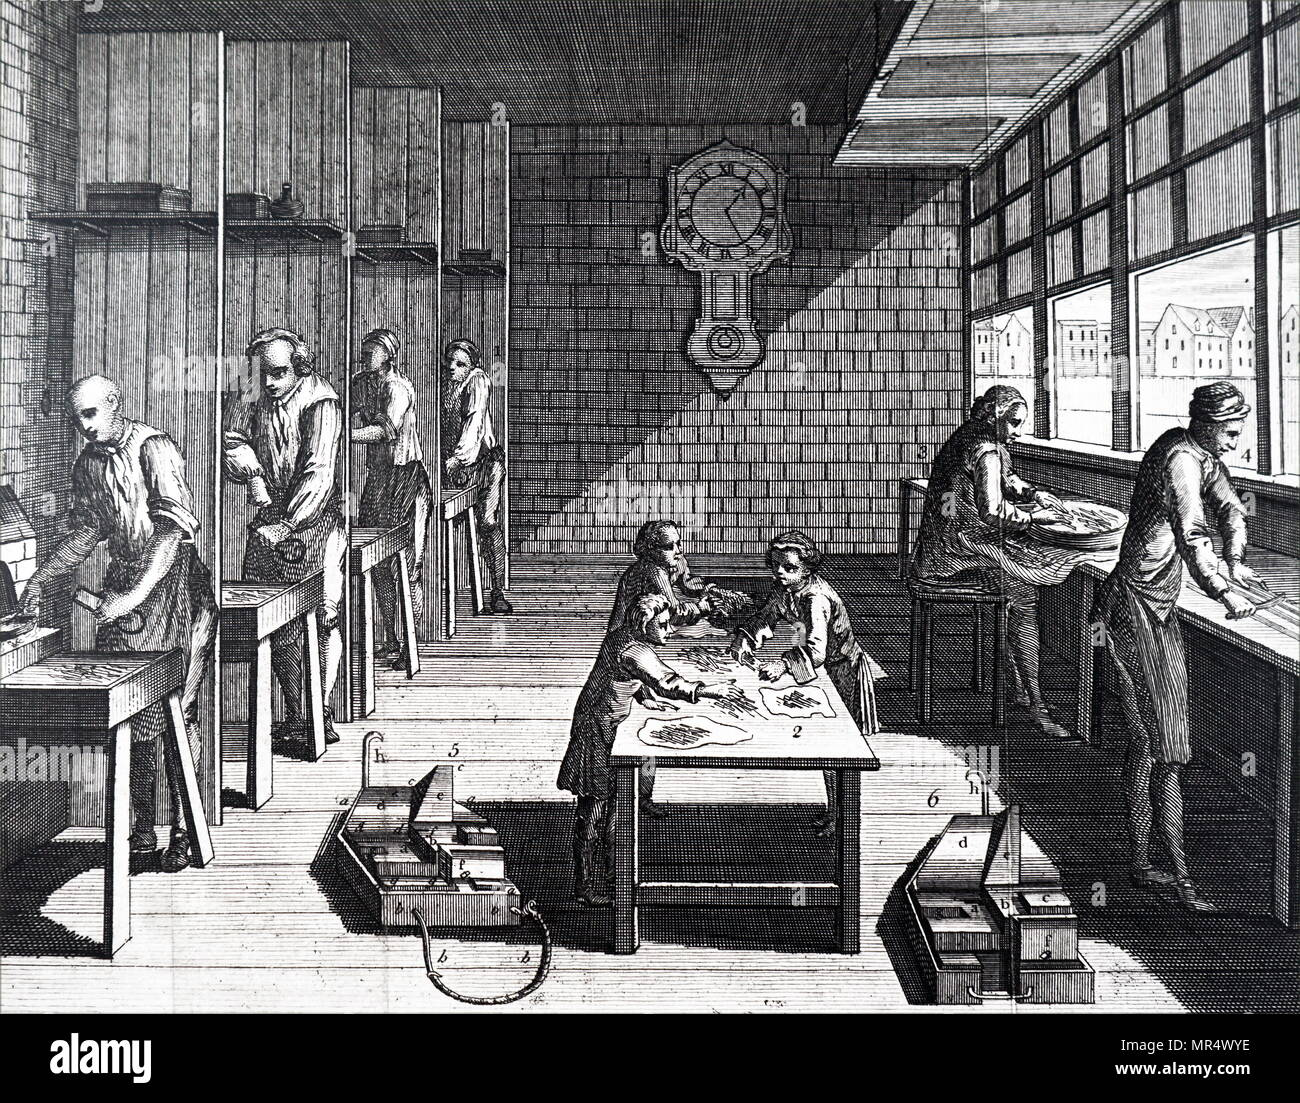 Illustration depicting the process of casting type: At 1) on left are 4 type-founders, each with a small furnace for melting the alloy of lead and iron from which the type is cast. The man at the front is filling a ladle with molten metal, ready to tip it into the mould in his left hand. The average number of letters cast in a day was 3000. The letters are next passed to the boys at 2) who break off the shanks. At 3) they are rubbed on a stone to remove un-wanted roughness, and at 4) they are cut to one length. Dated 18th century Stock Photo